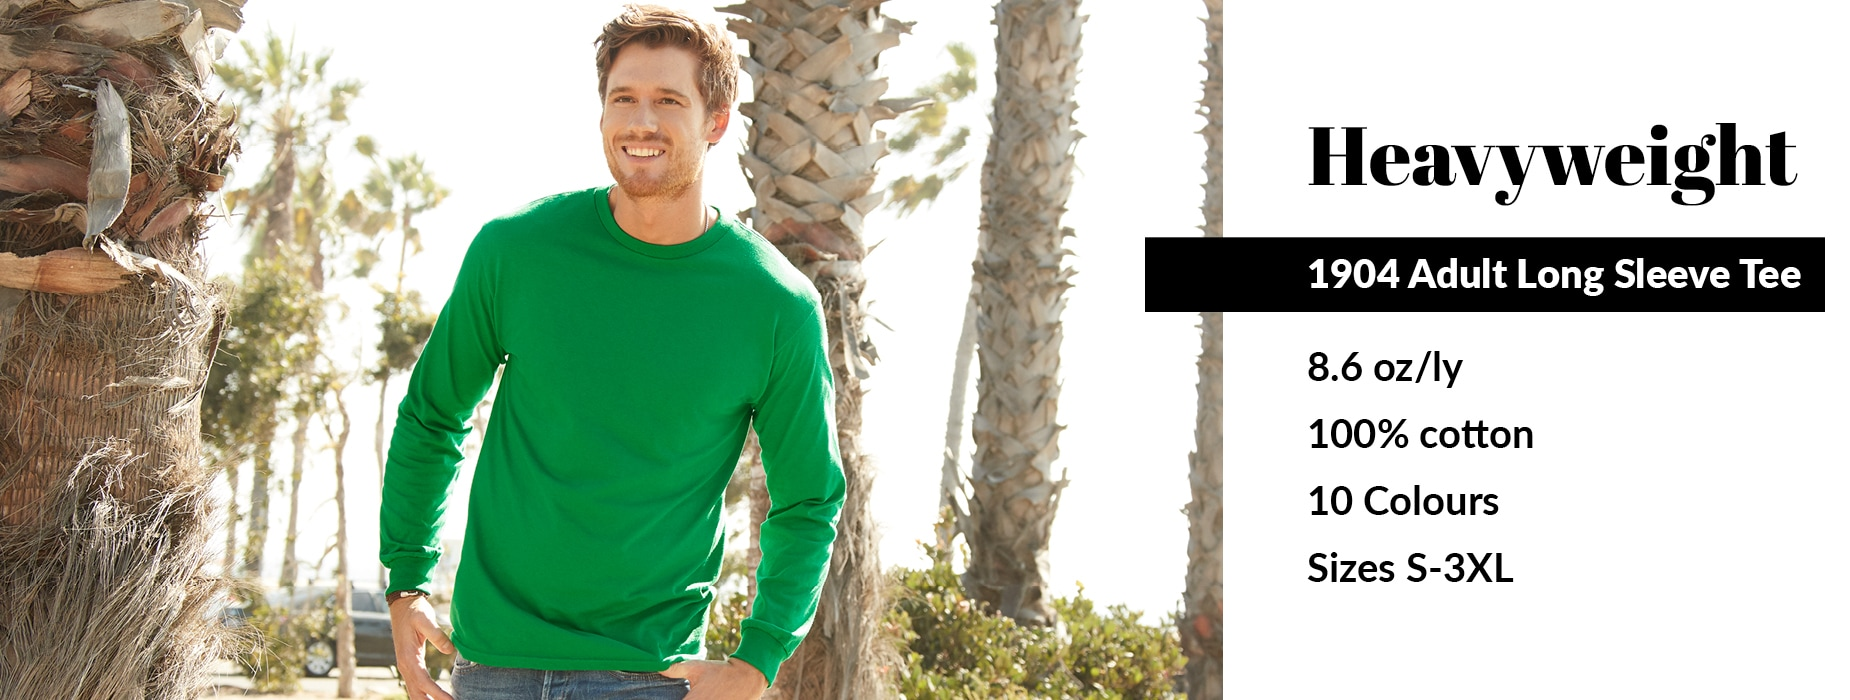 View our 1904 Adult Long Sleeve Tee from Alstyle Canada